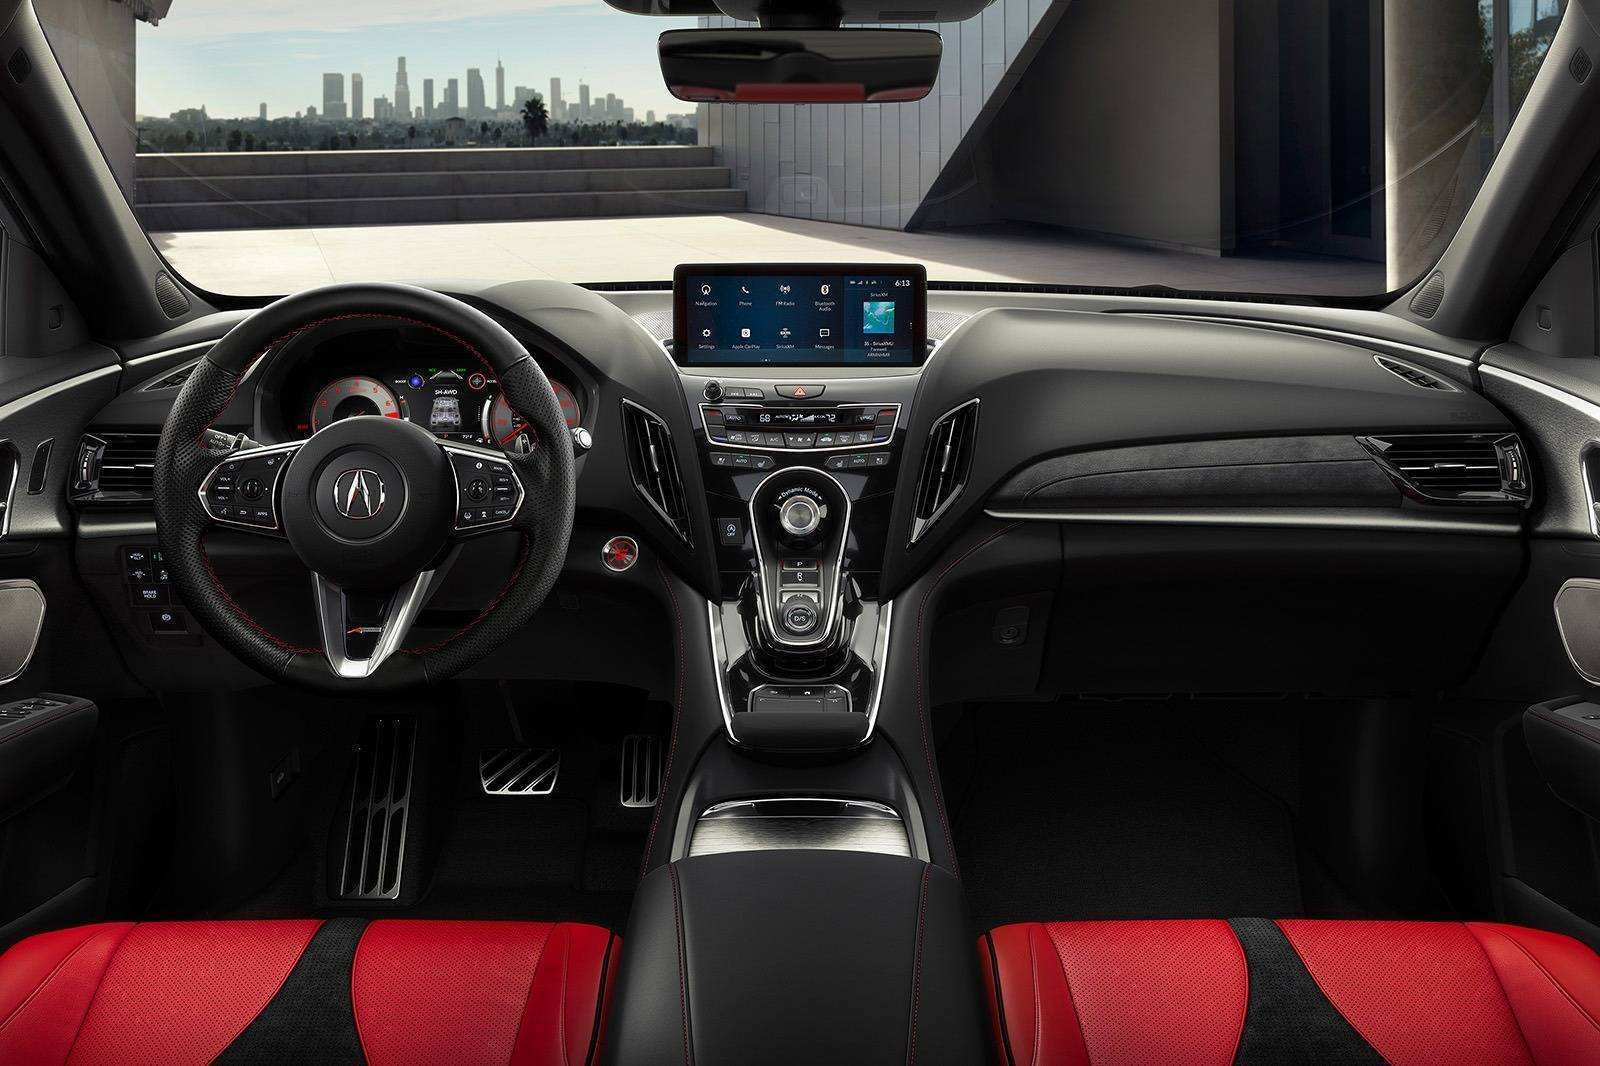 37 Concept of Best Acura 2019 Dimensions Release Date And Specs New Concept by Best Acura 2019 Dimensions Release Date And Specs